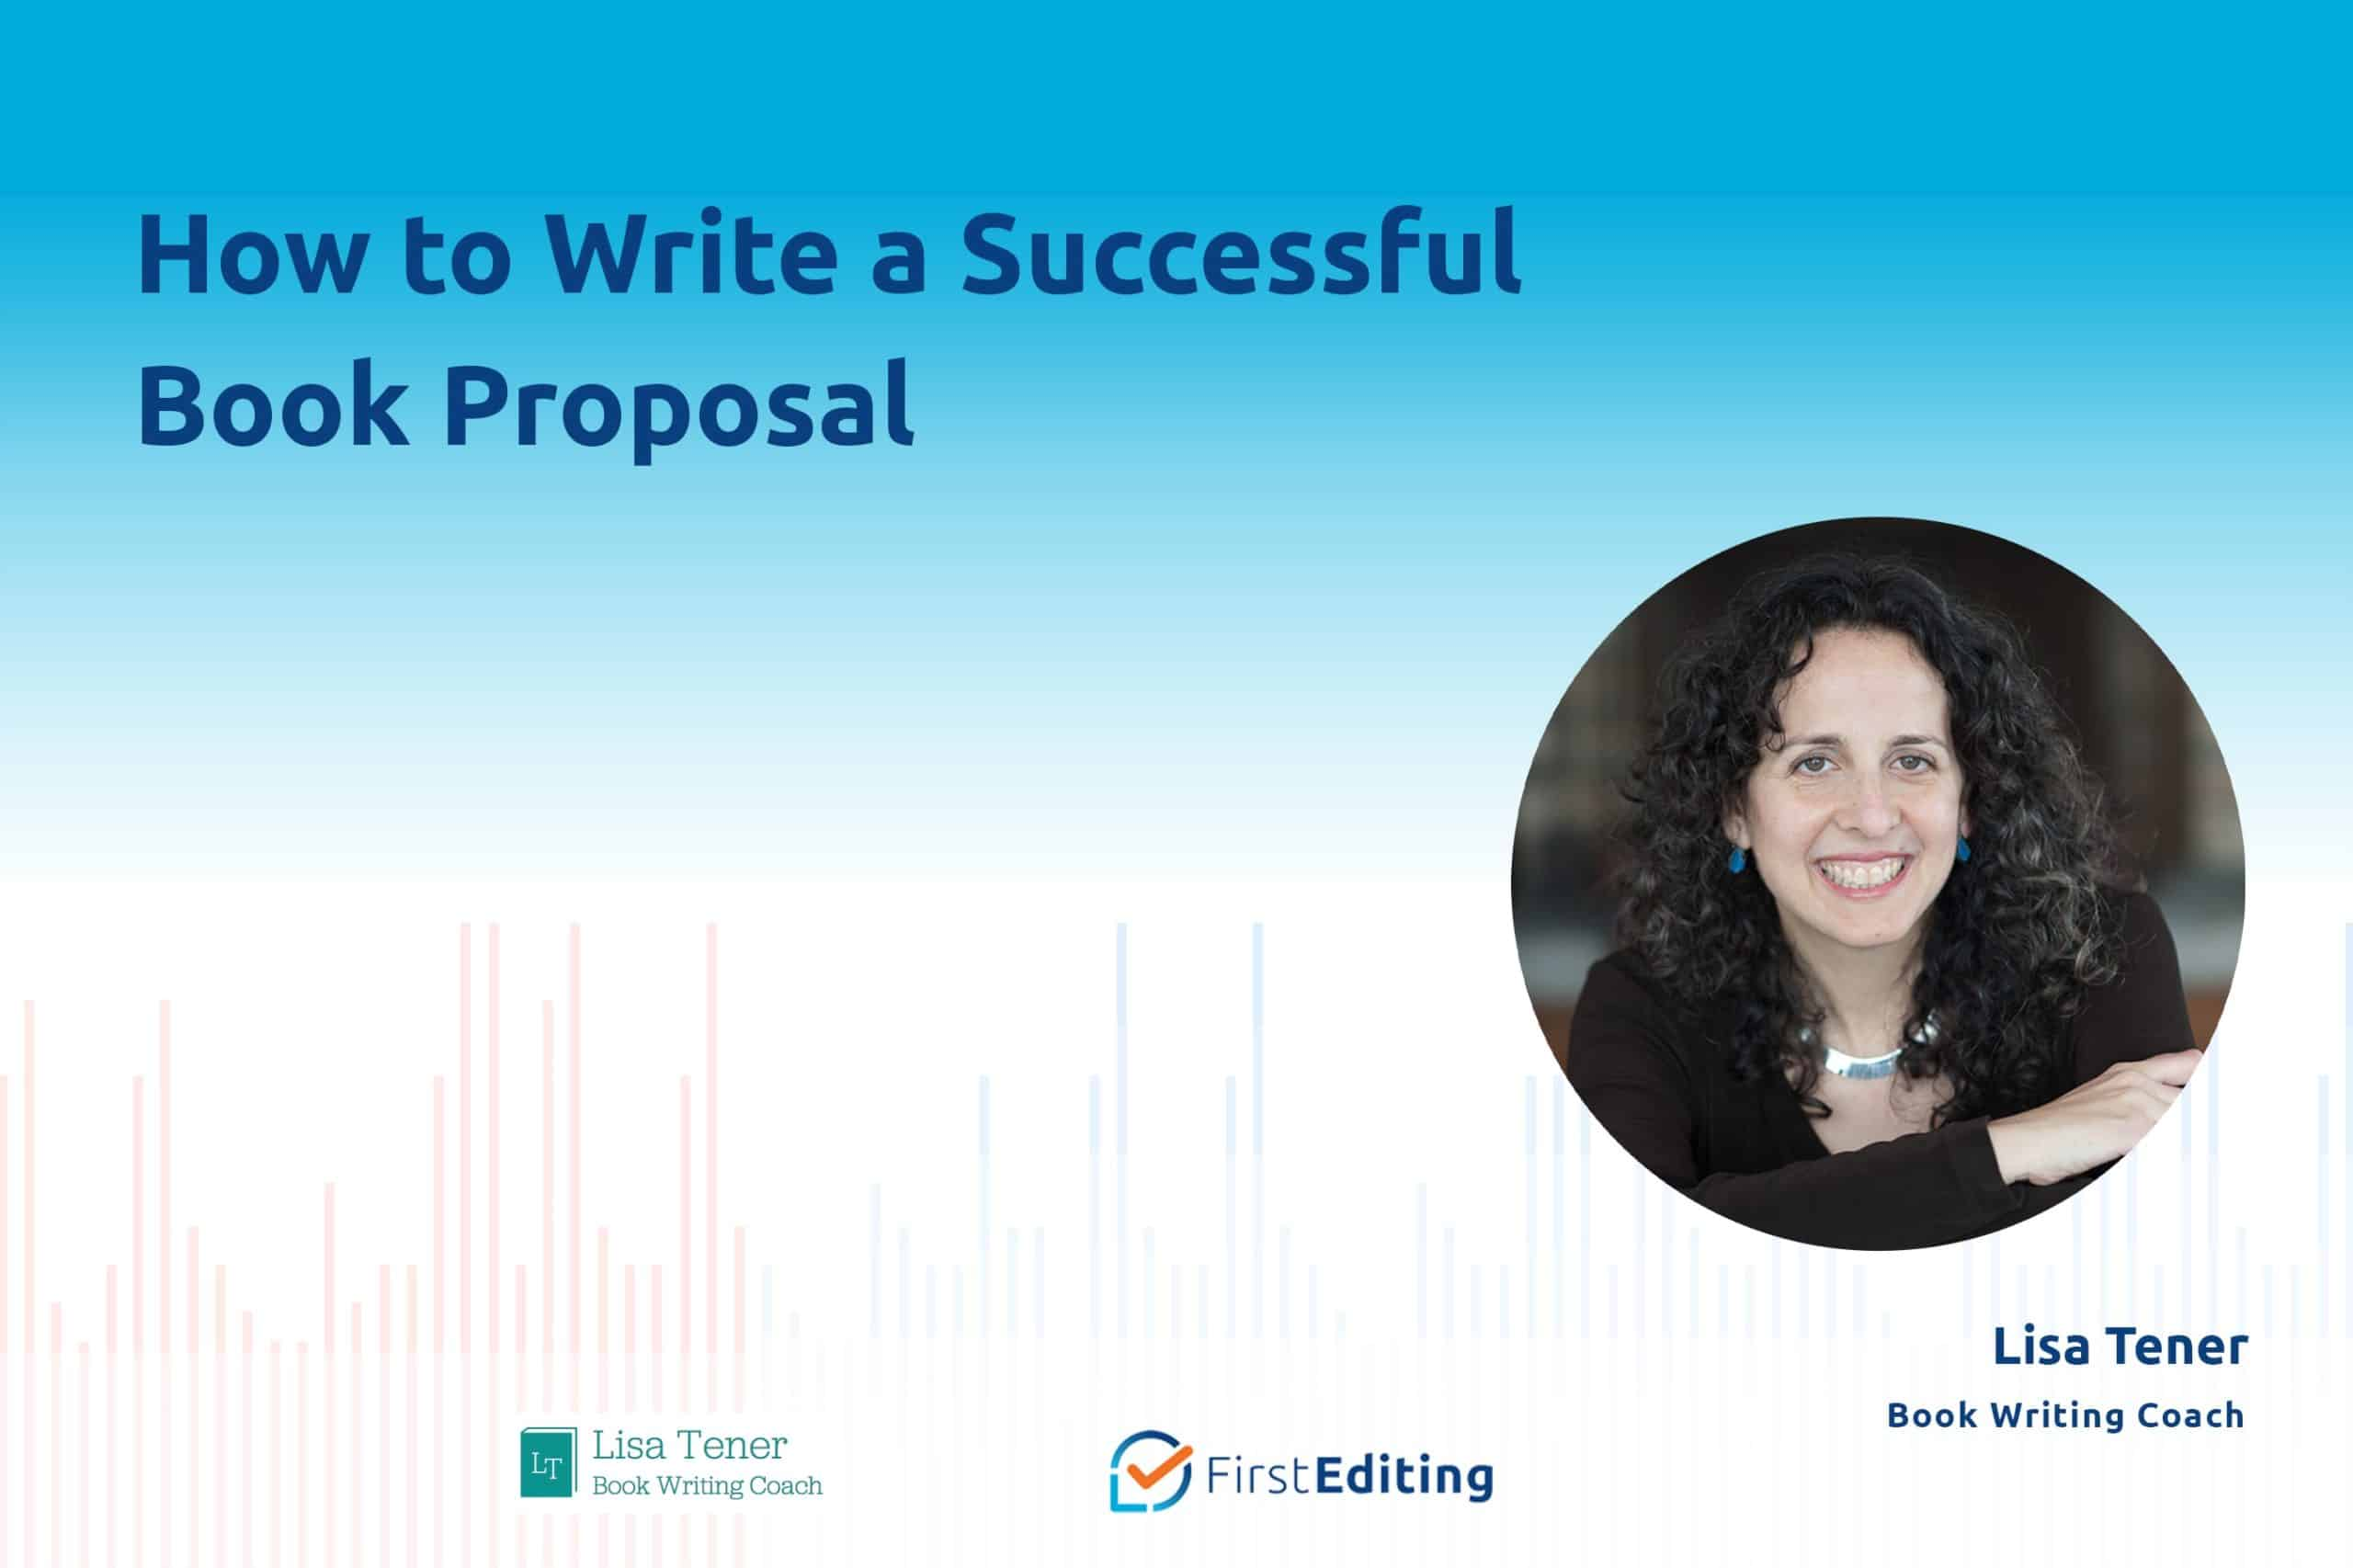 How to Write a Successful Book Proposal with Lisa Tener